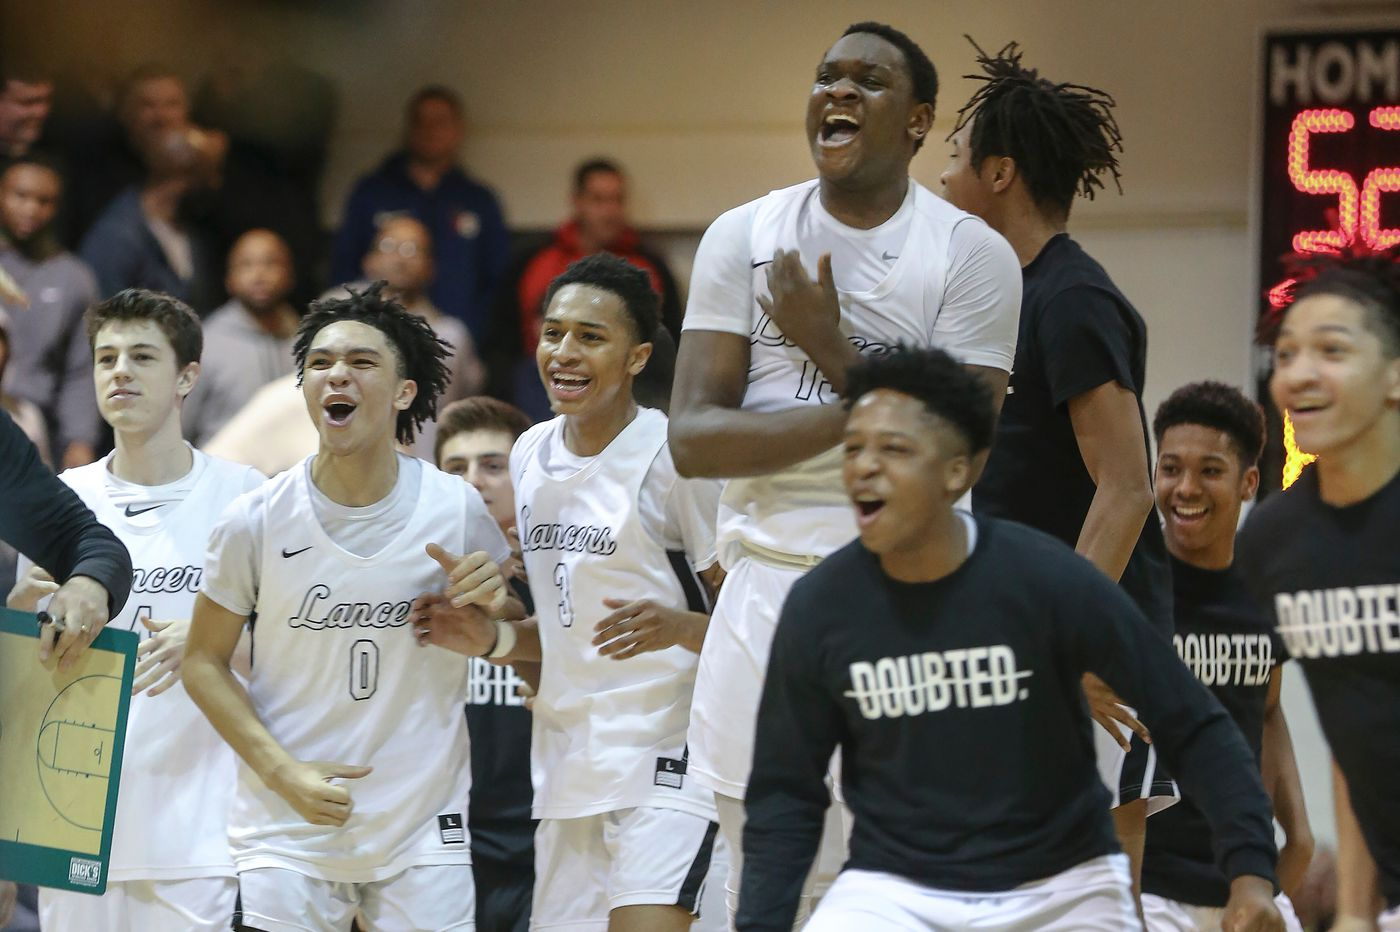 Catholic League boys' basketball semifinals shift to Thursday night at Palestra because of snow forecast